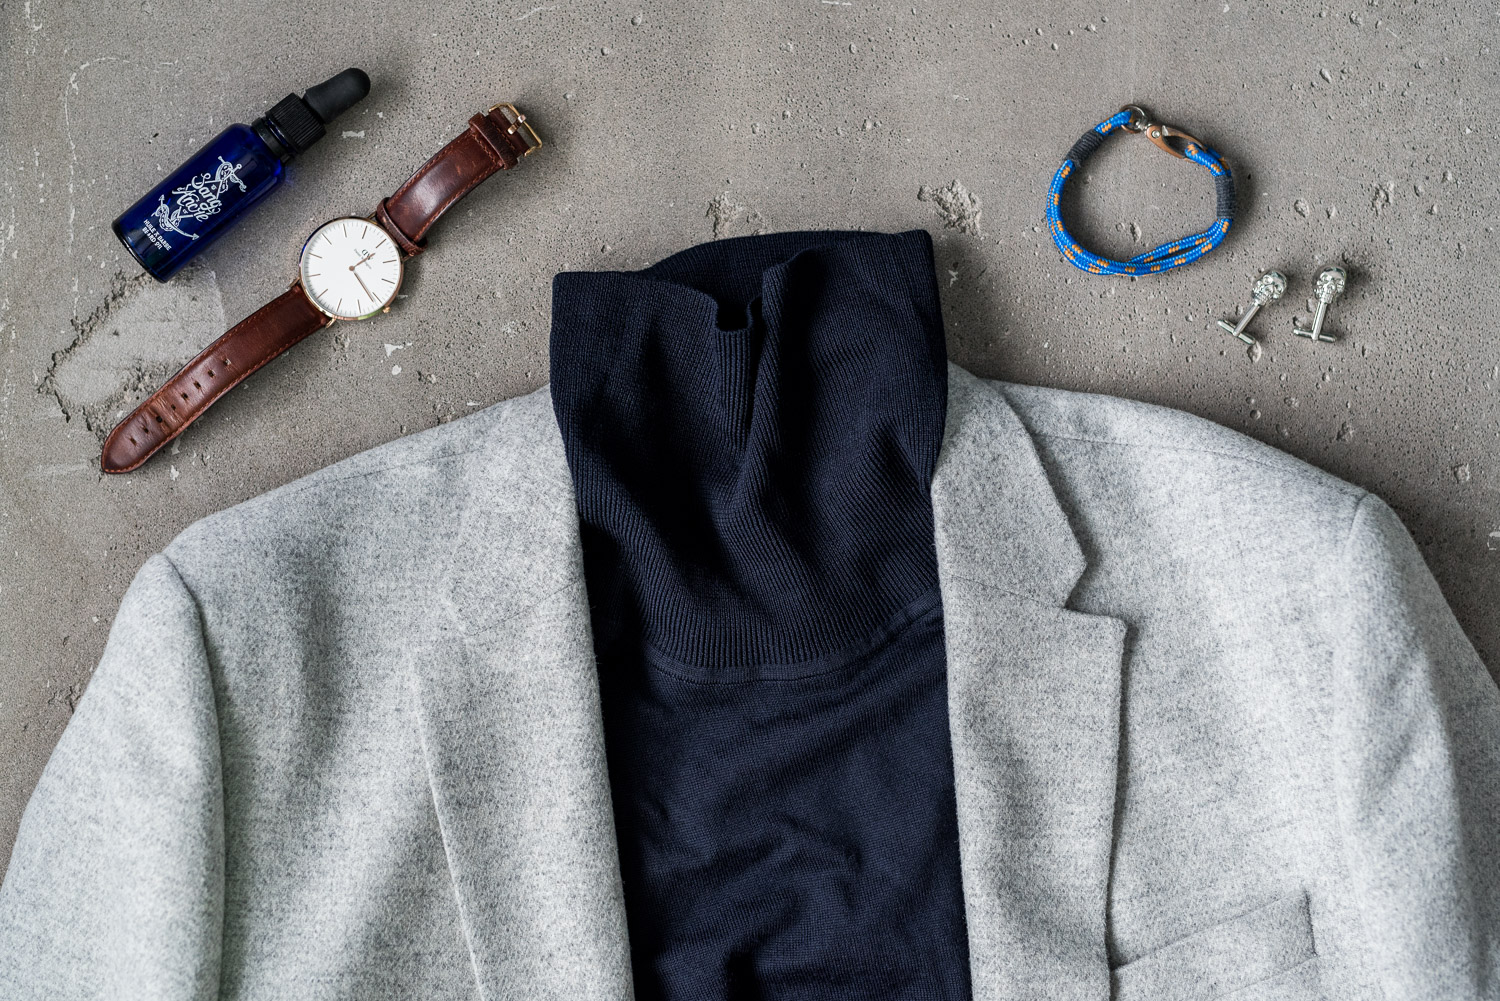 Classic look with a twist for men inspired by Holidays and Chris